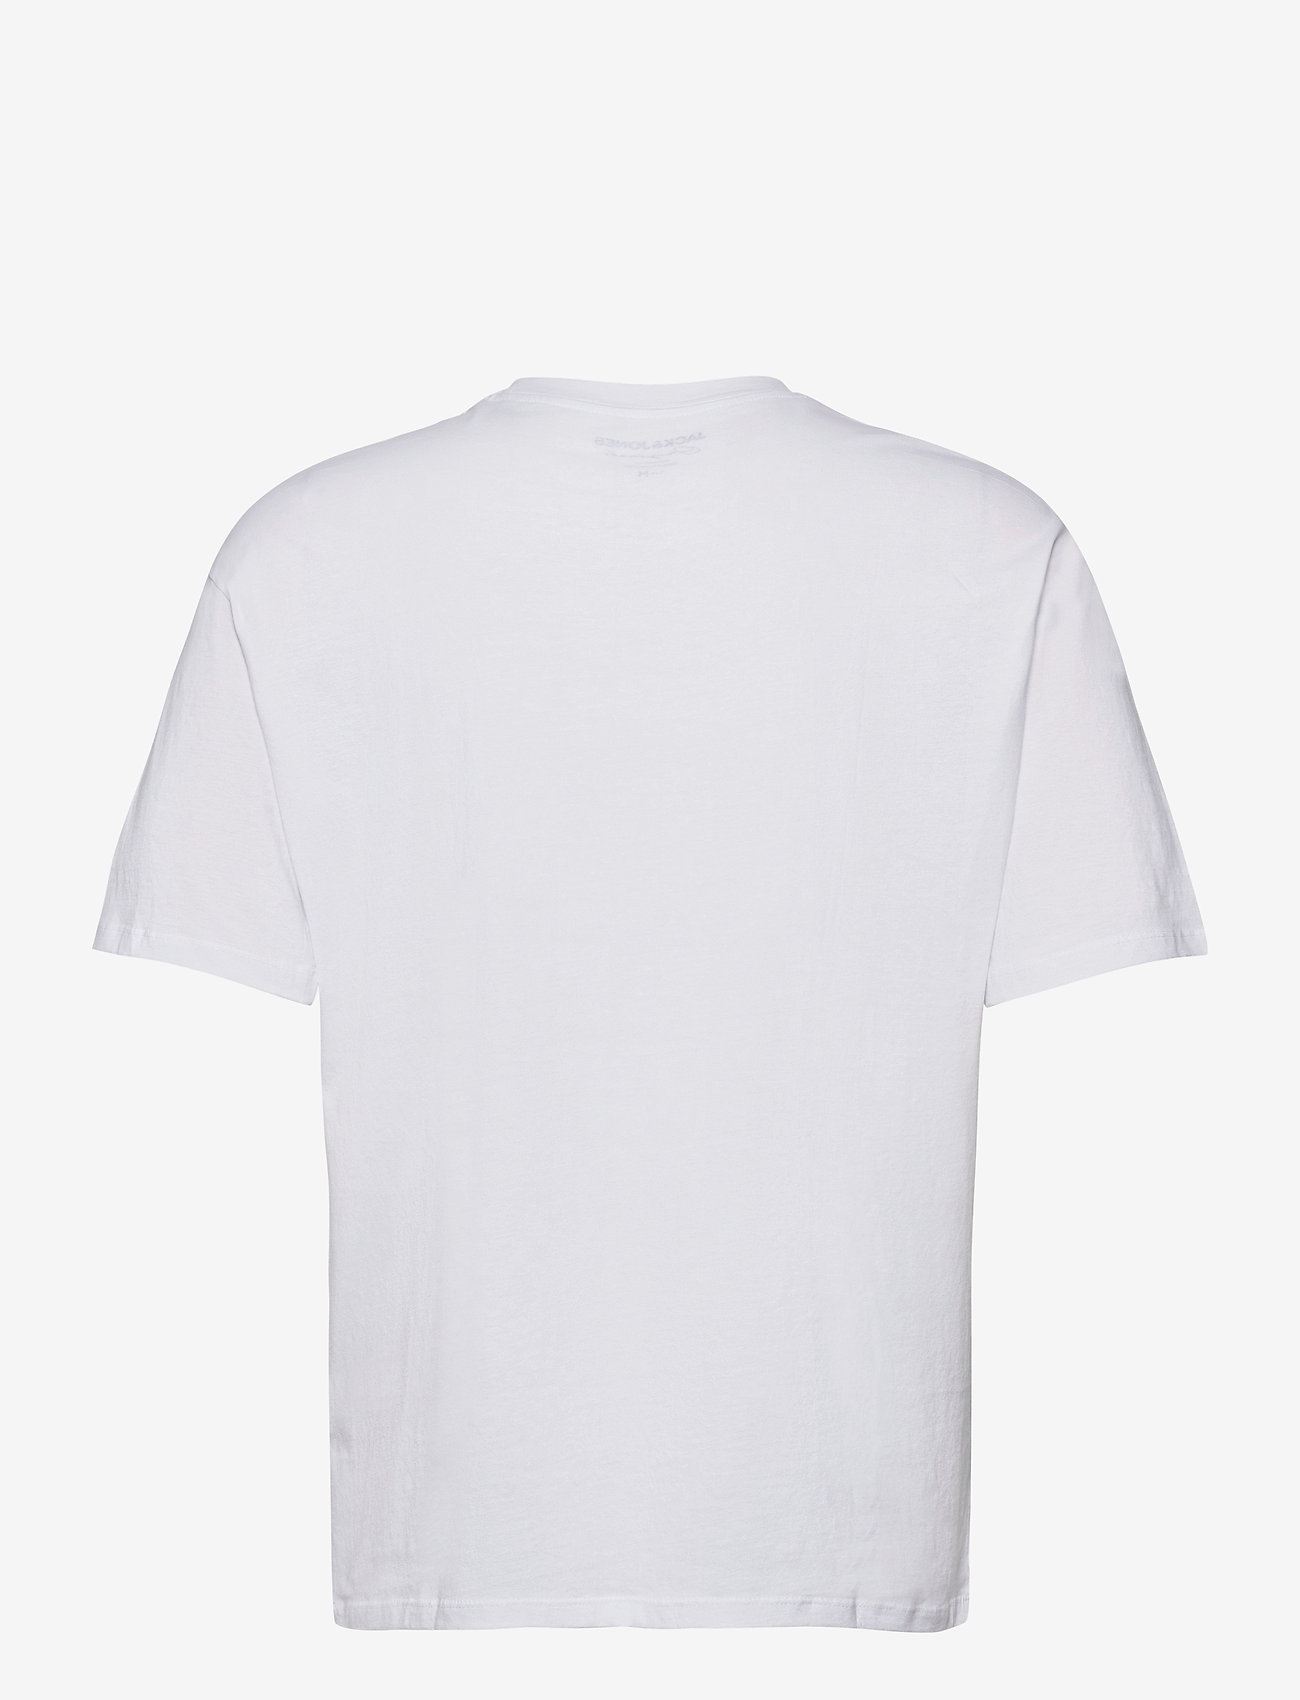 Jack & Jones - JORBRINK TEE SS CREW NECK NOOS - basic t-shirts - white - 1